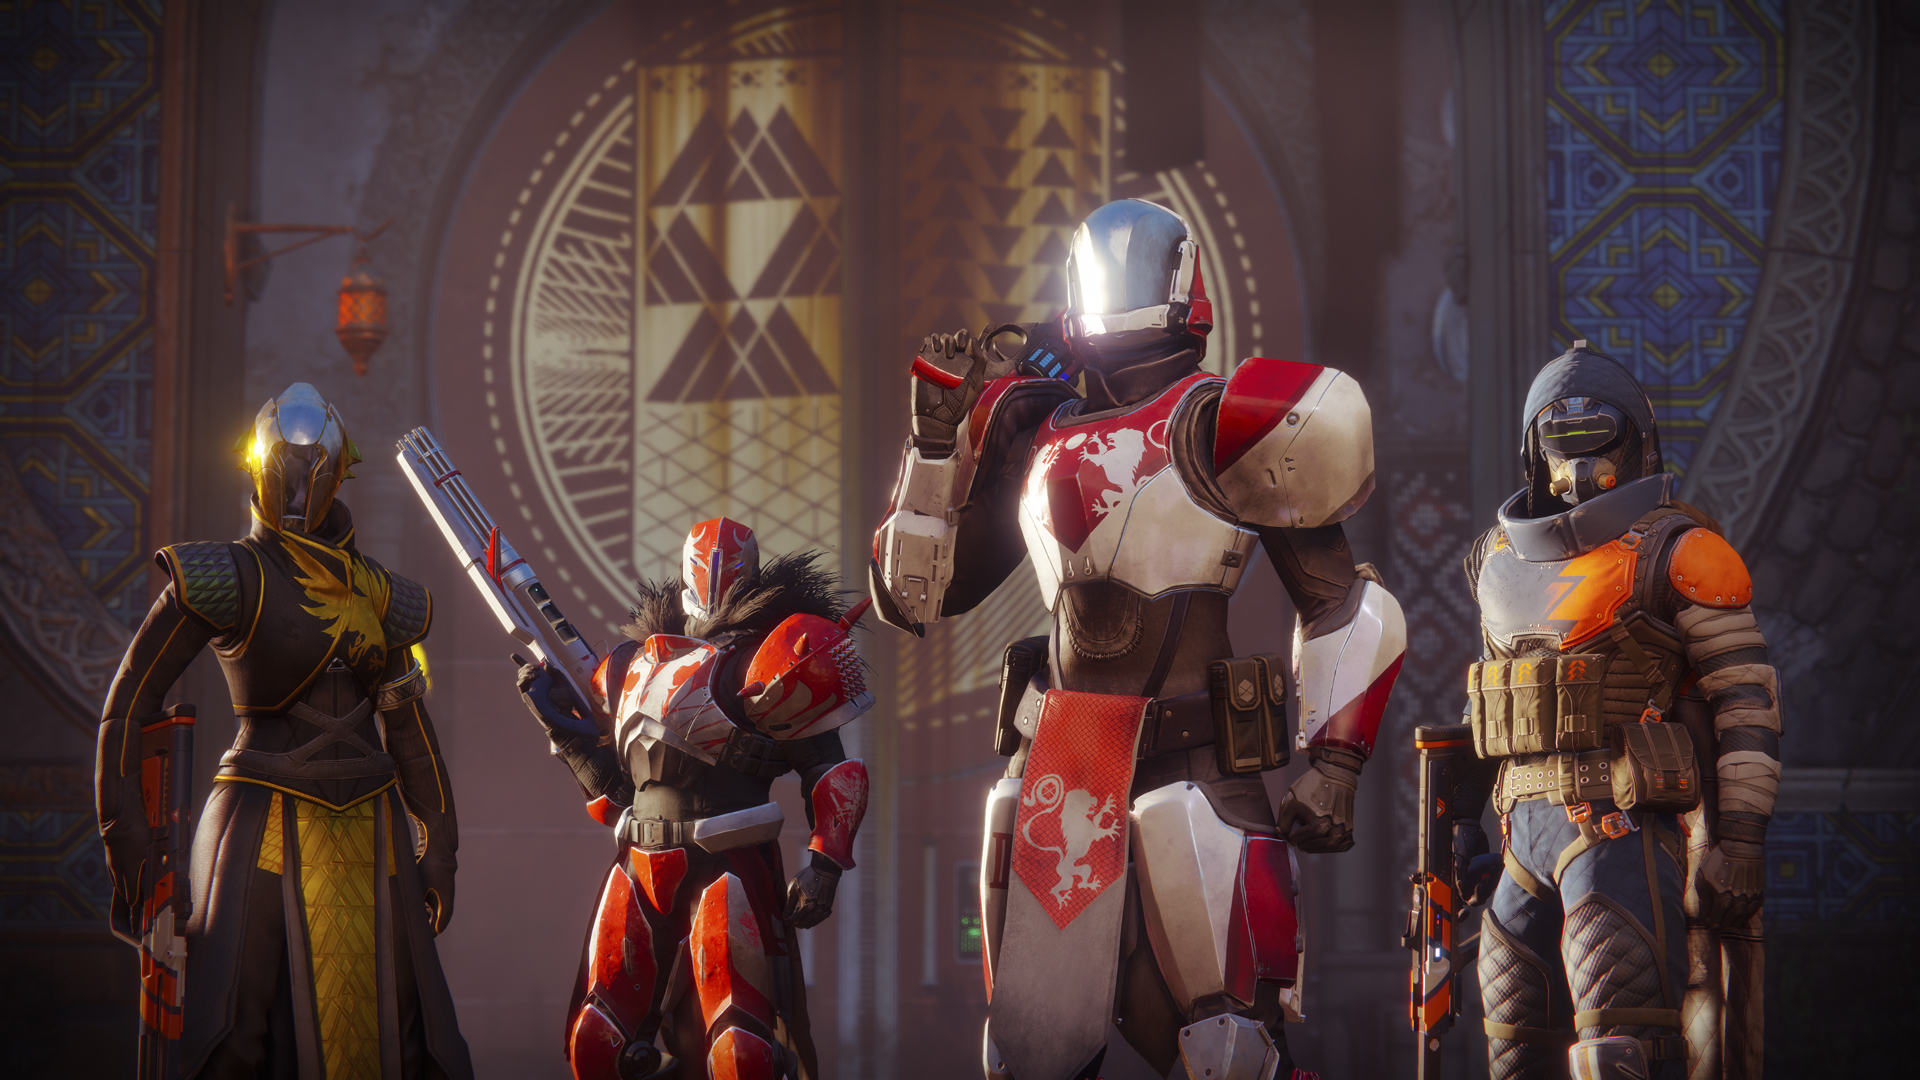 Destiny 2 is currently available for $12 as part of Humble Monthly Bundle